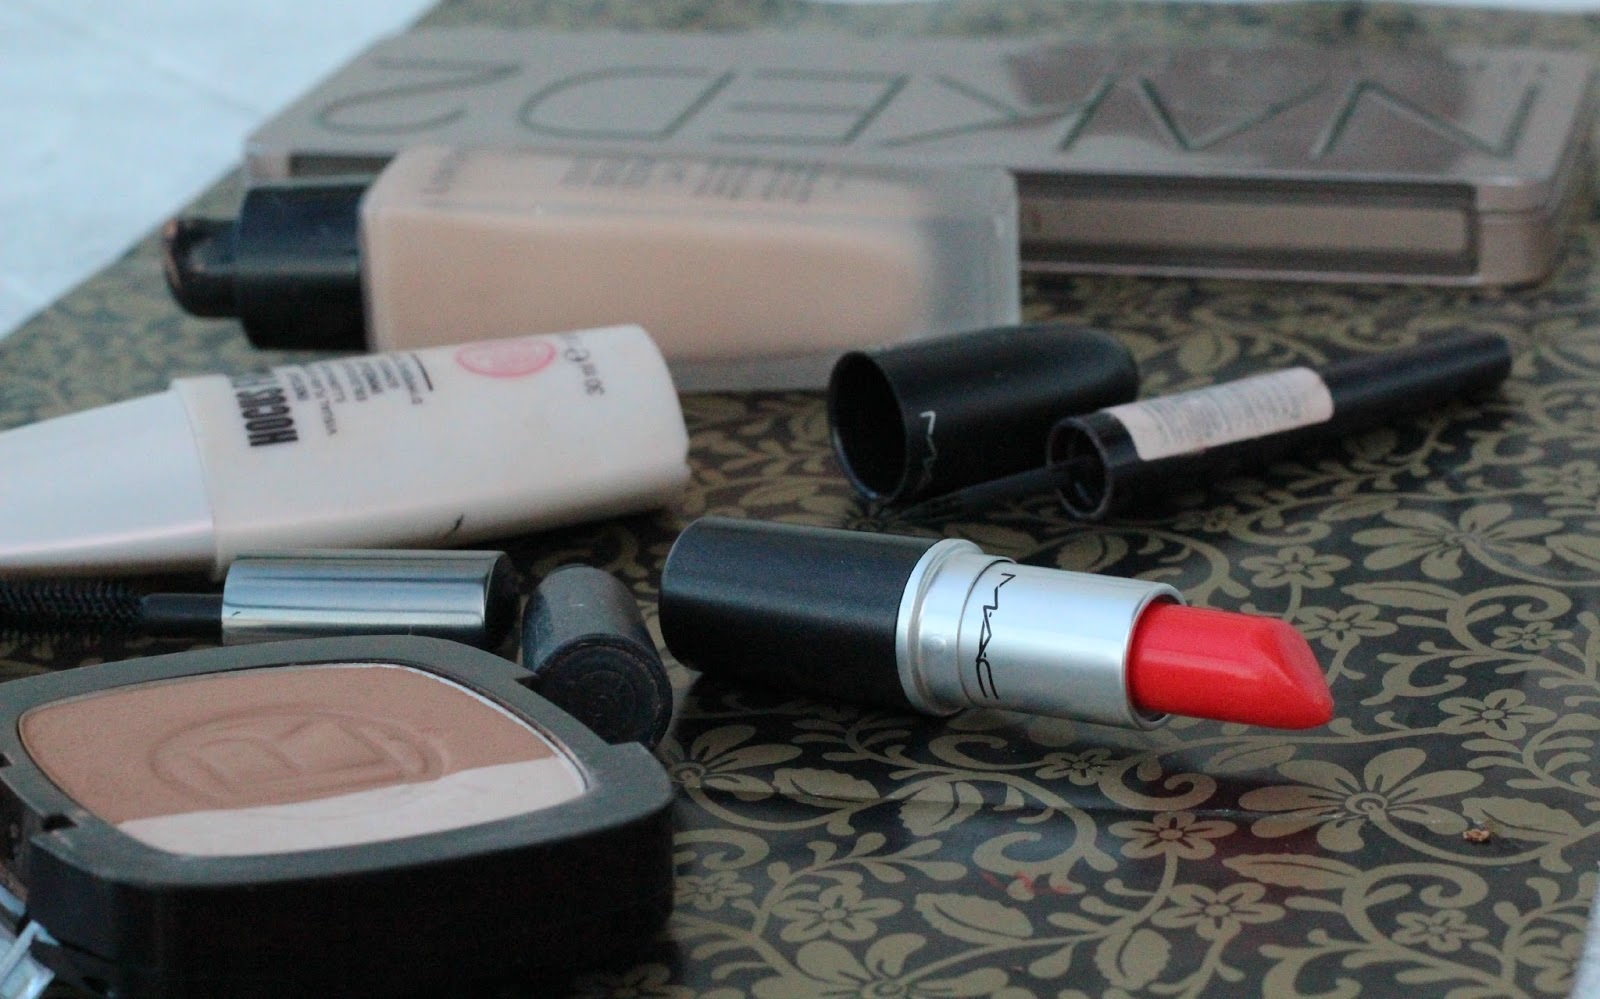 Orange lip trend face of the day - mac morange, urban decay naked 2, they're real, teint idole ultra lancome, rimmel exaggerate liner, hocus focus soap and glory, l'oreal bronzer